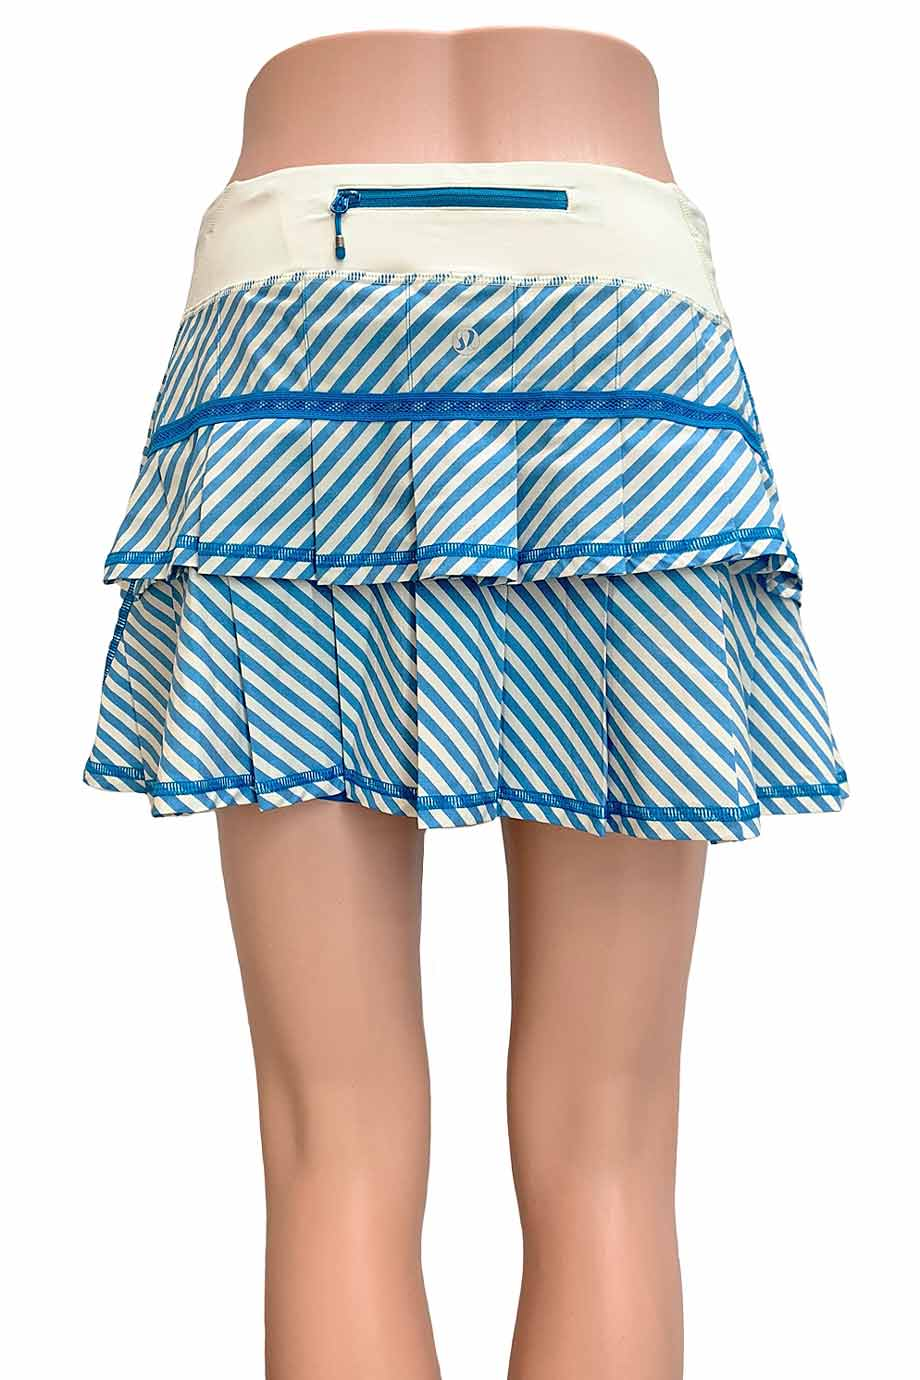 Lululemon Blue + Cream Classic Stripe Pace Setter Skirt / Sz 6